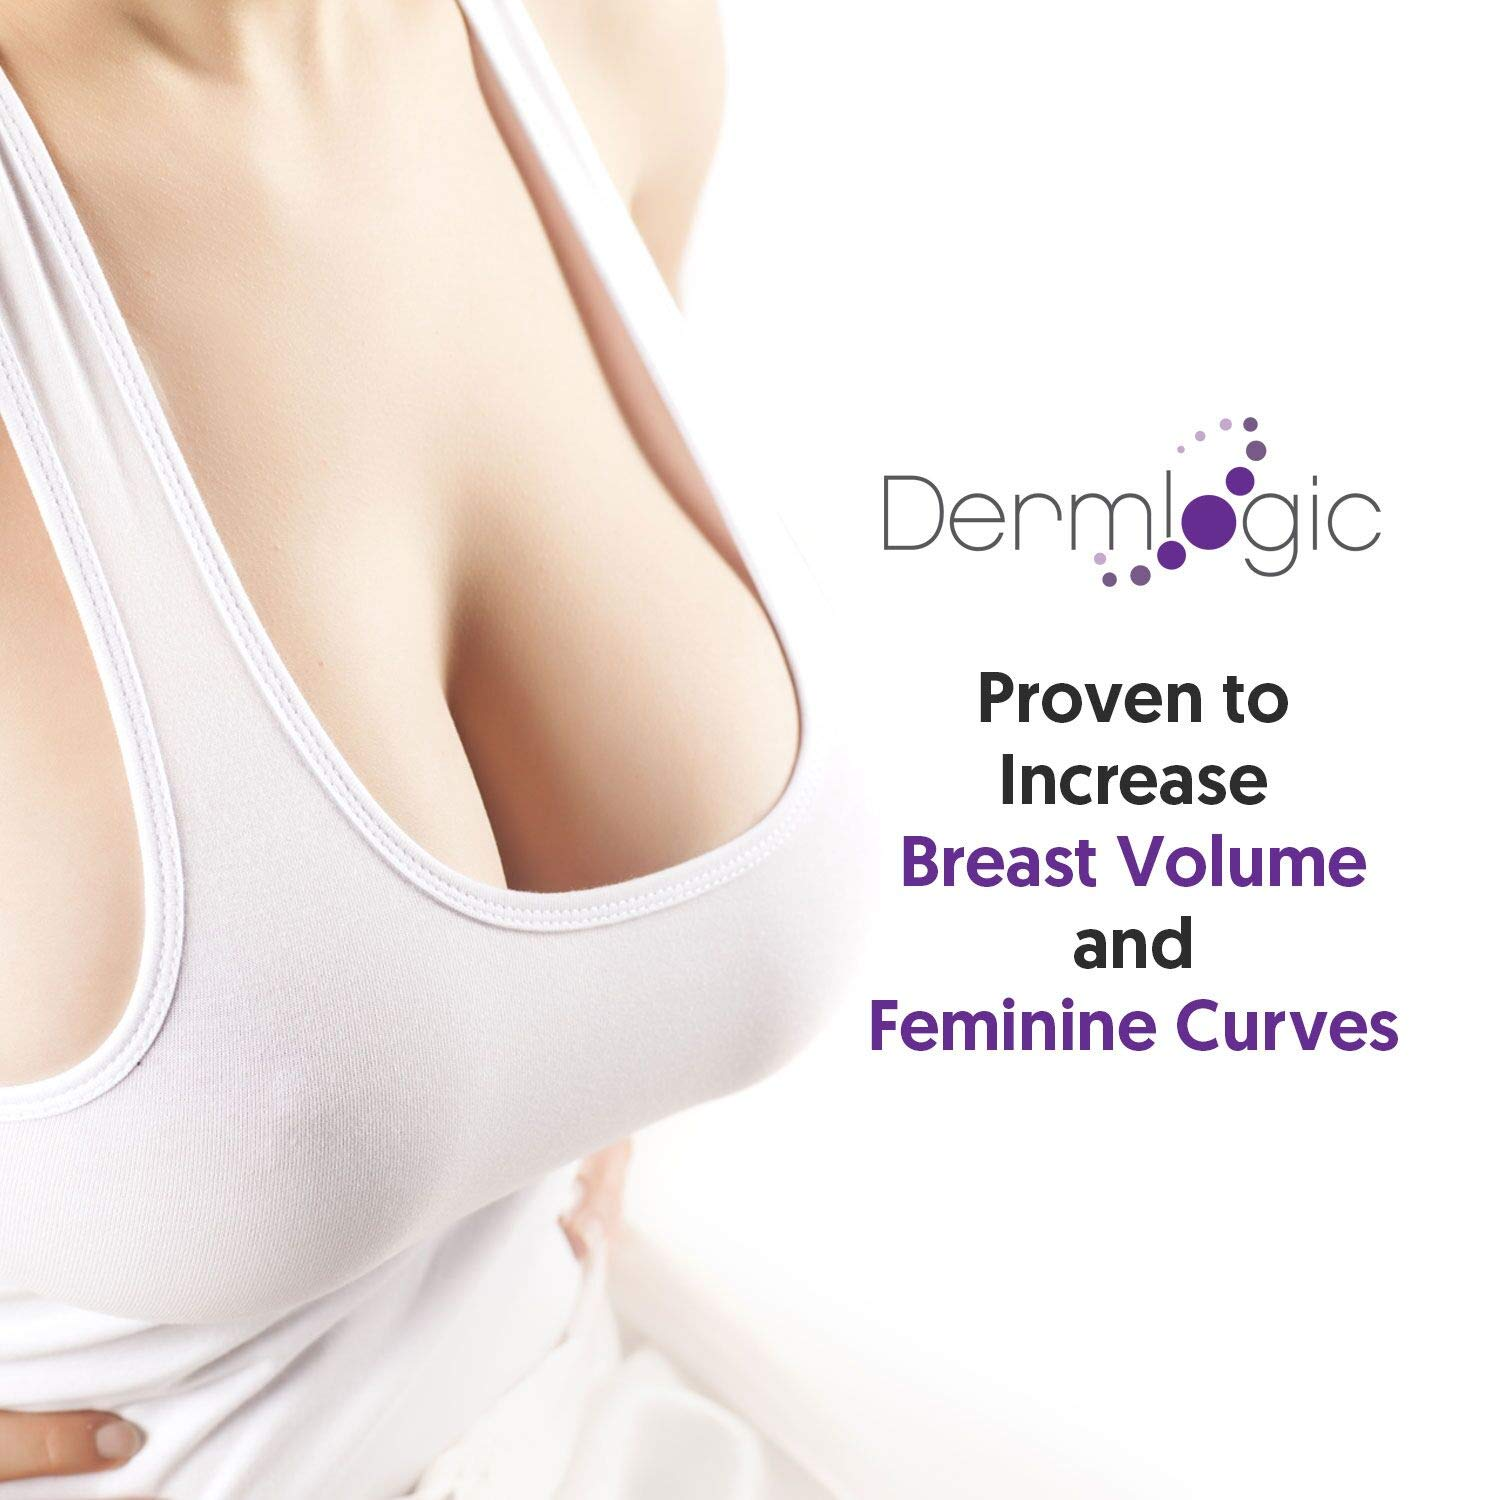 Breast Enhancement Enlargement Cream- Clinically Proven for Bigger, Fuller Breasts. Firms, Plumps Lifts your Boobs. Natural Enhancer Alternative to Surgery for Women.